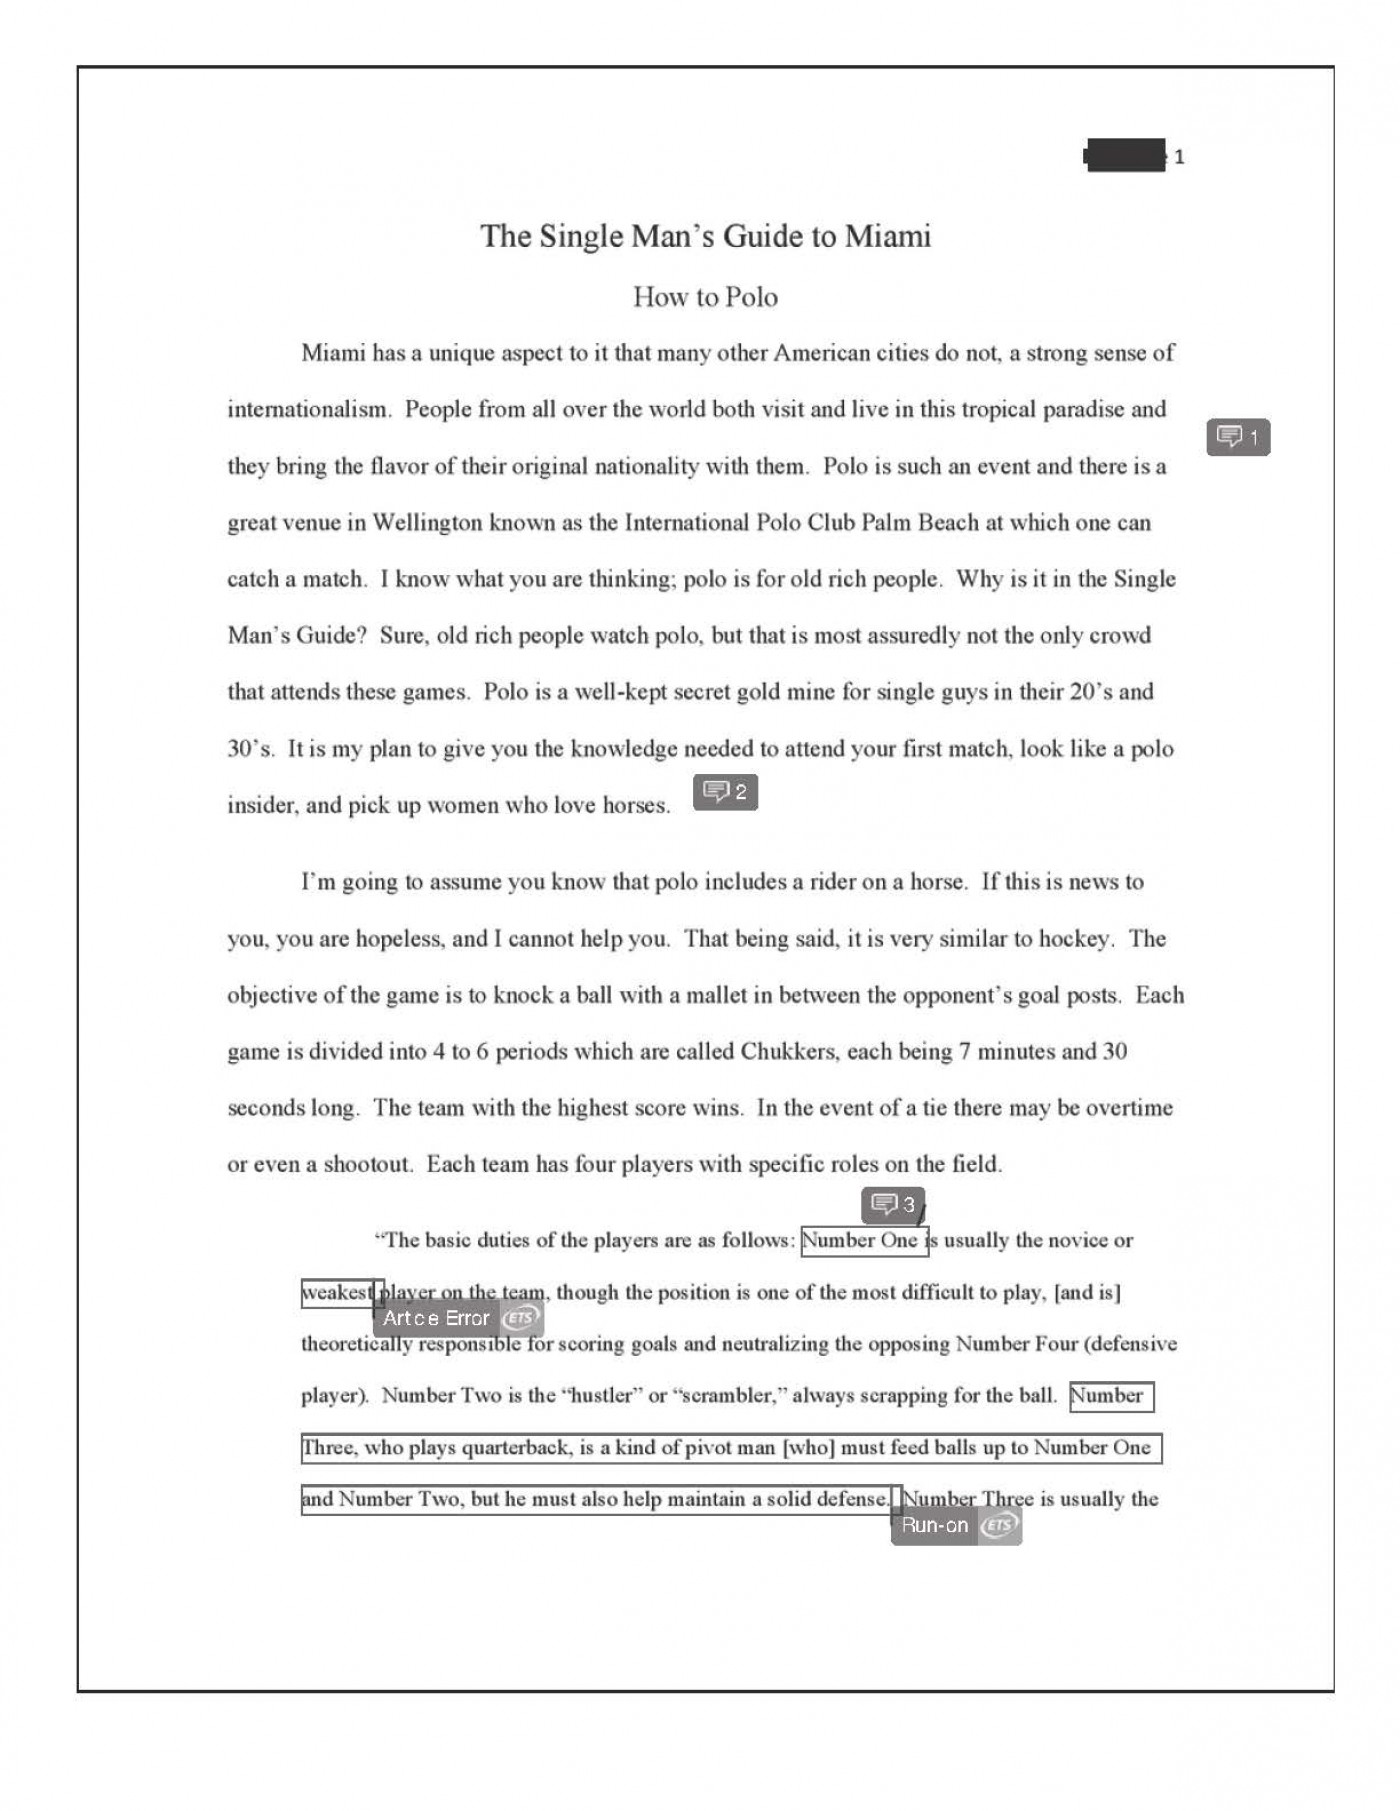 005 Informative Essay Topics Essays Sample Funny Argumentative For Middle School Final How To Polo Redacted P College Students Hilarious Good Remarkable Fourth Grade Graders 1400